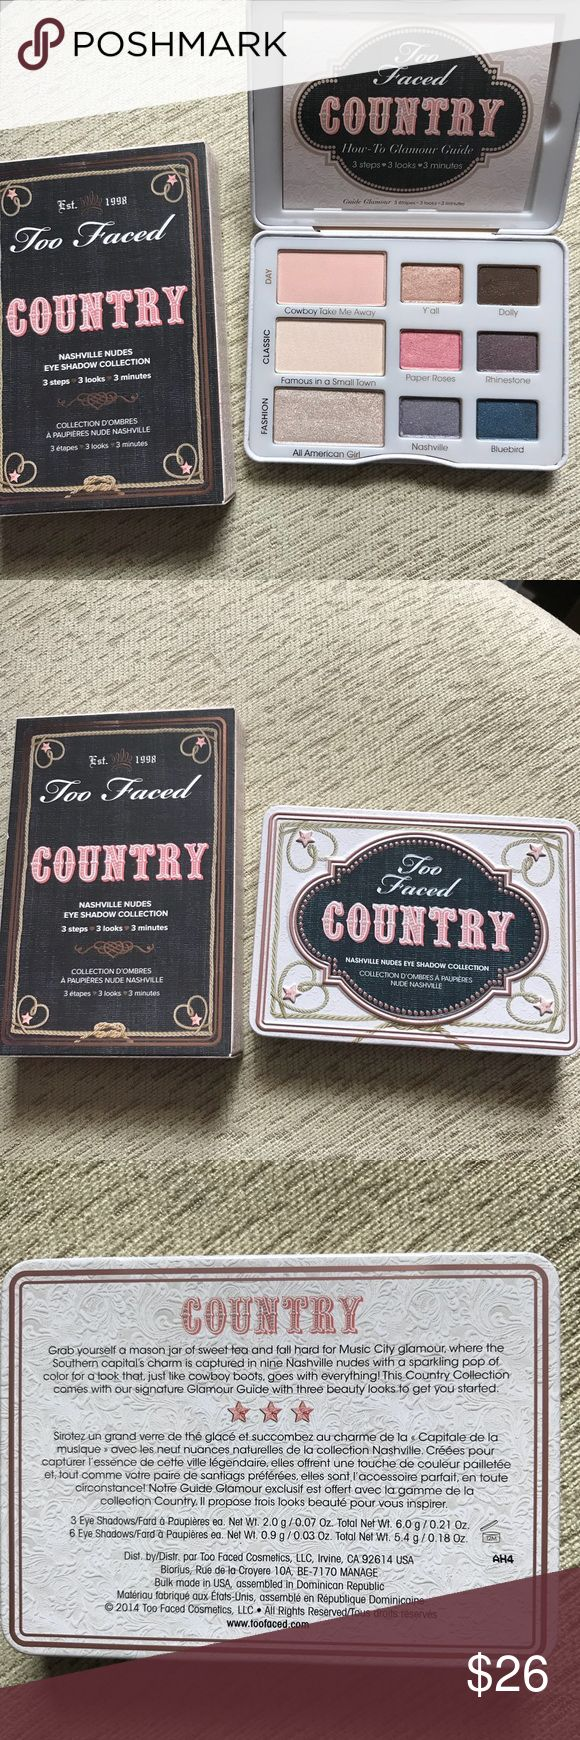 Authentic Too Faced Country palette Lightly swatched authentic Too Faced Country eyeshadow palette. Original packaging included along with a guide for a few looks. Only looking to sell no trades. Happy Poshing! Too Faced Makeup Eyeshadow